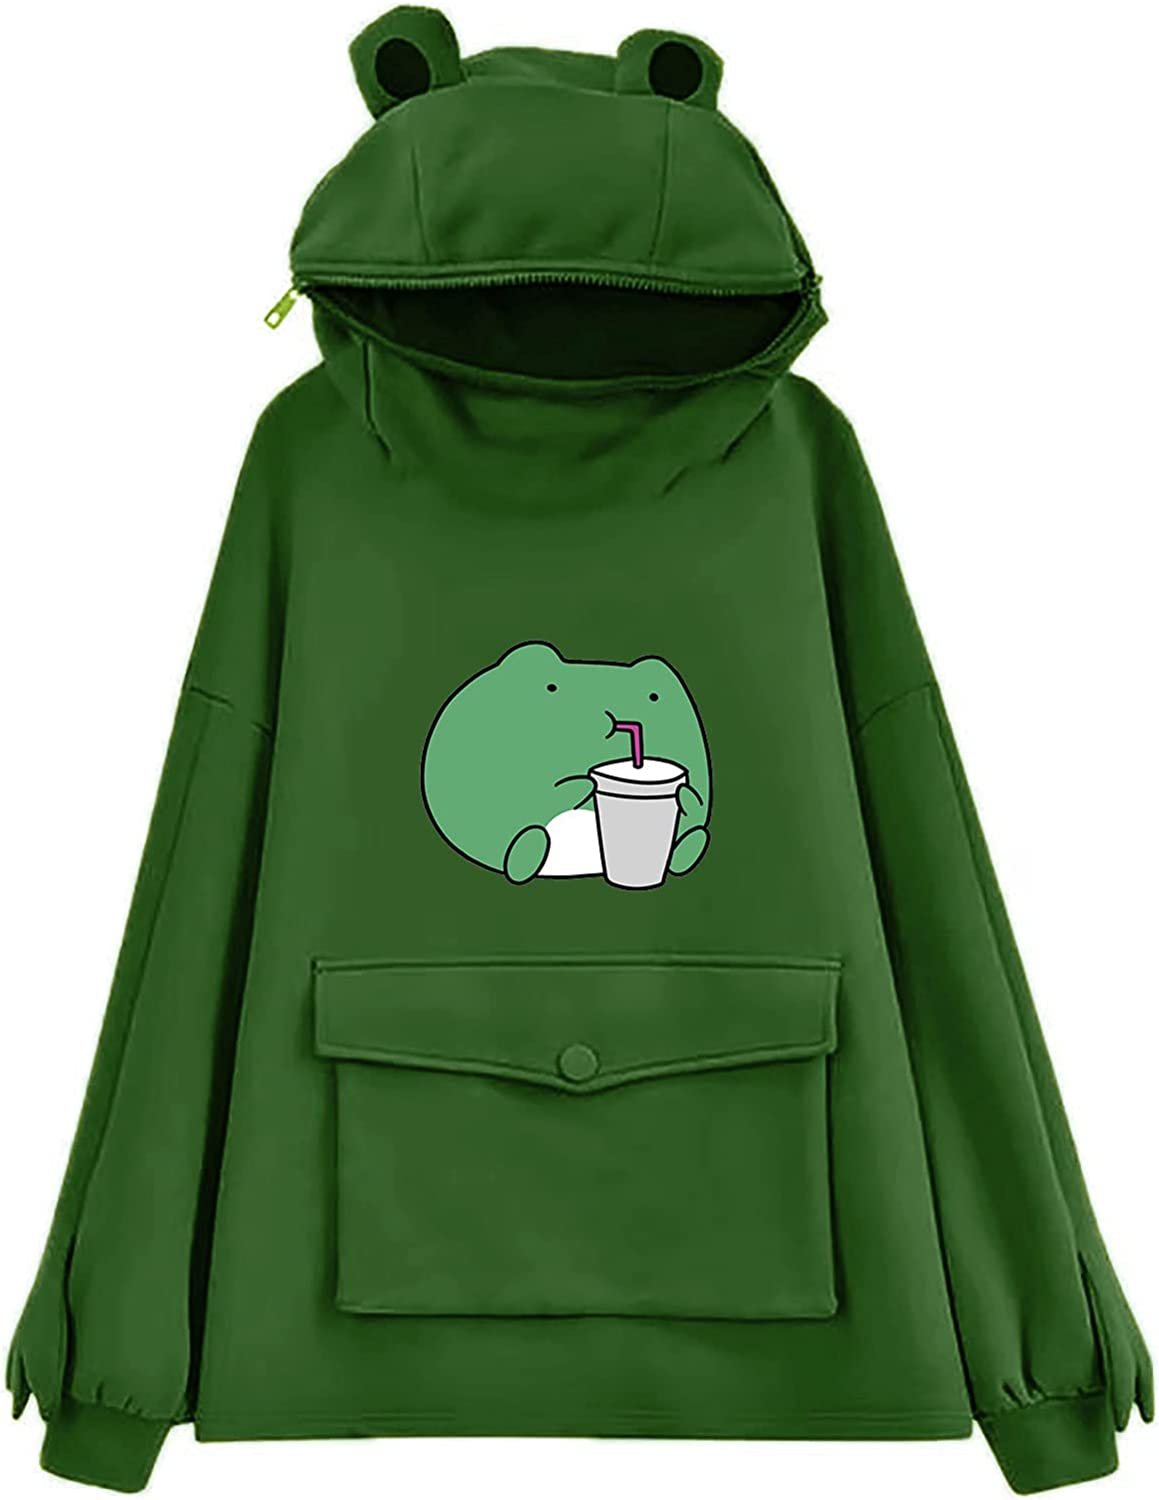 ORT Hoodies for Women, Hoodies for Women's Cute Frog Graphic Loose Long Sleeve Casual Sweatshirts Pullover Tops with Pocket